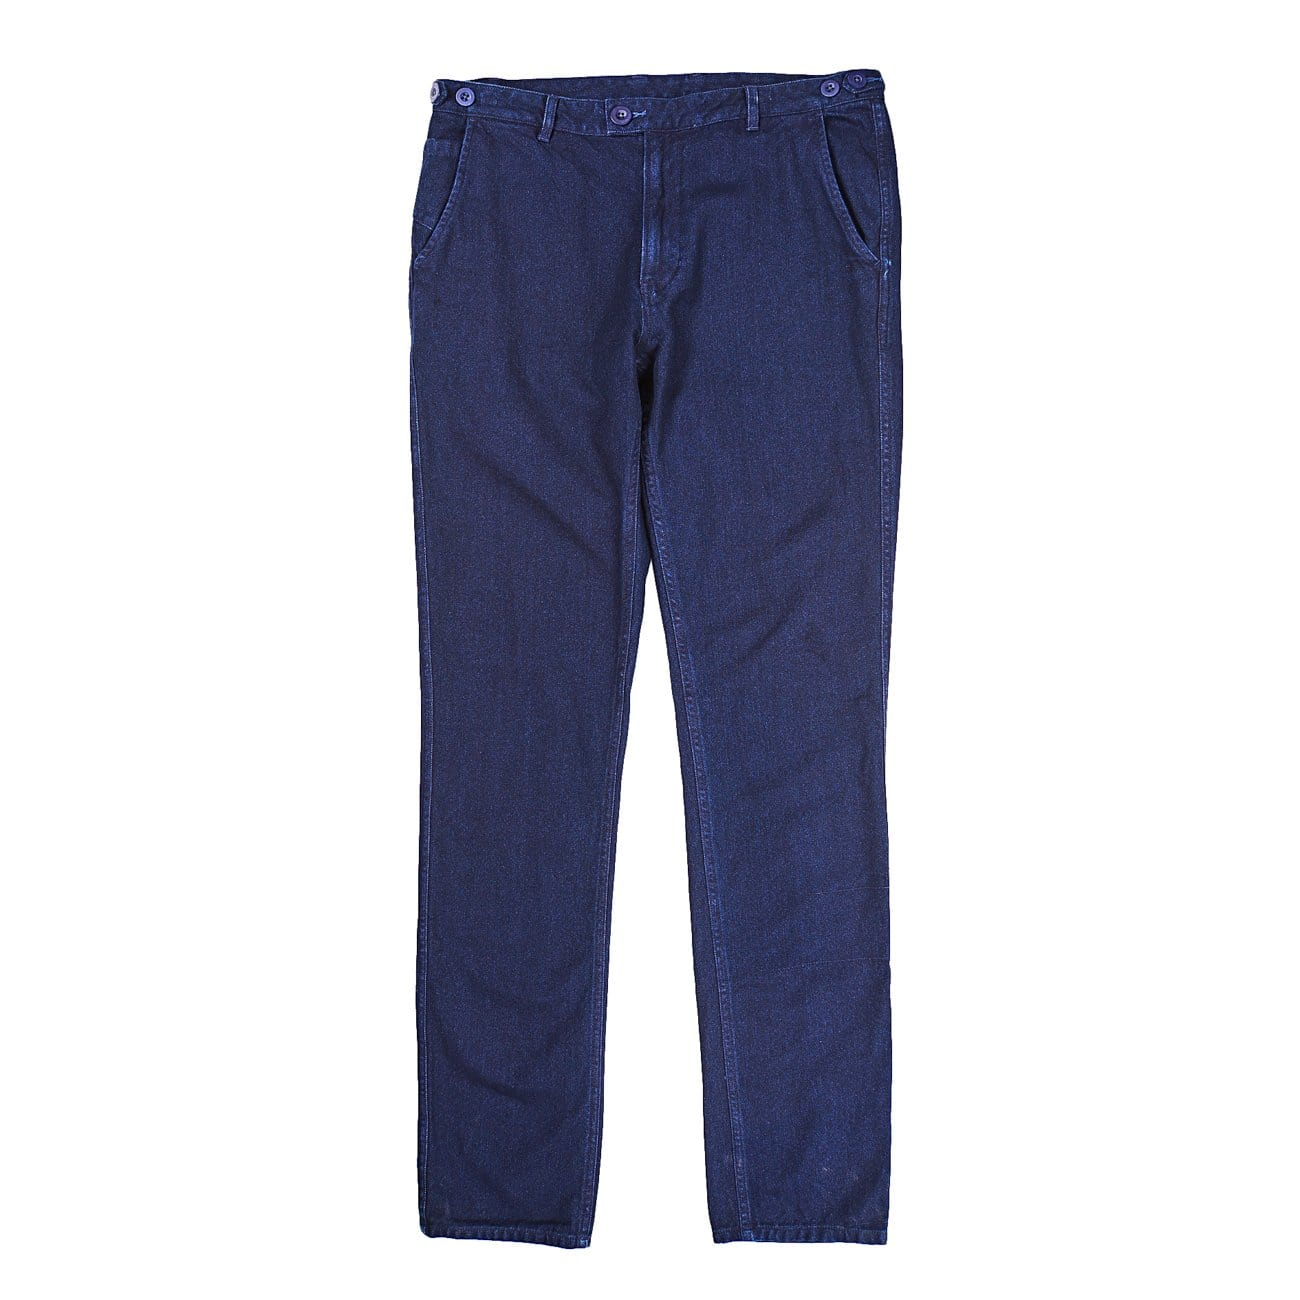 Rinsed Indigo Herringbone Slim Pants